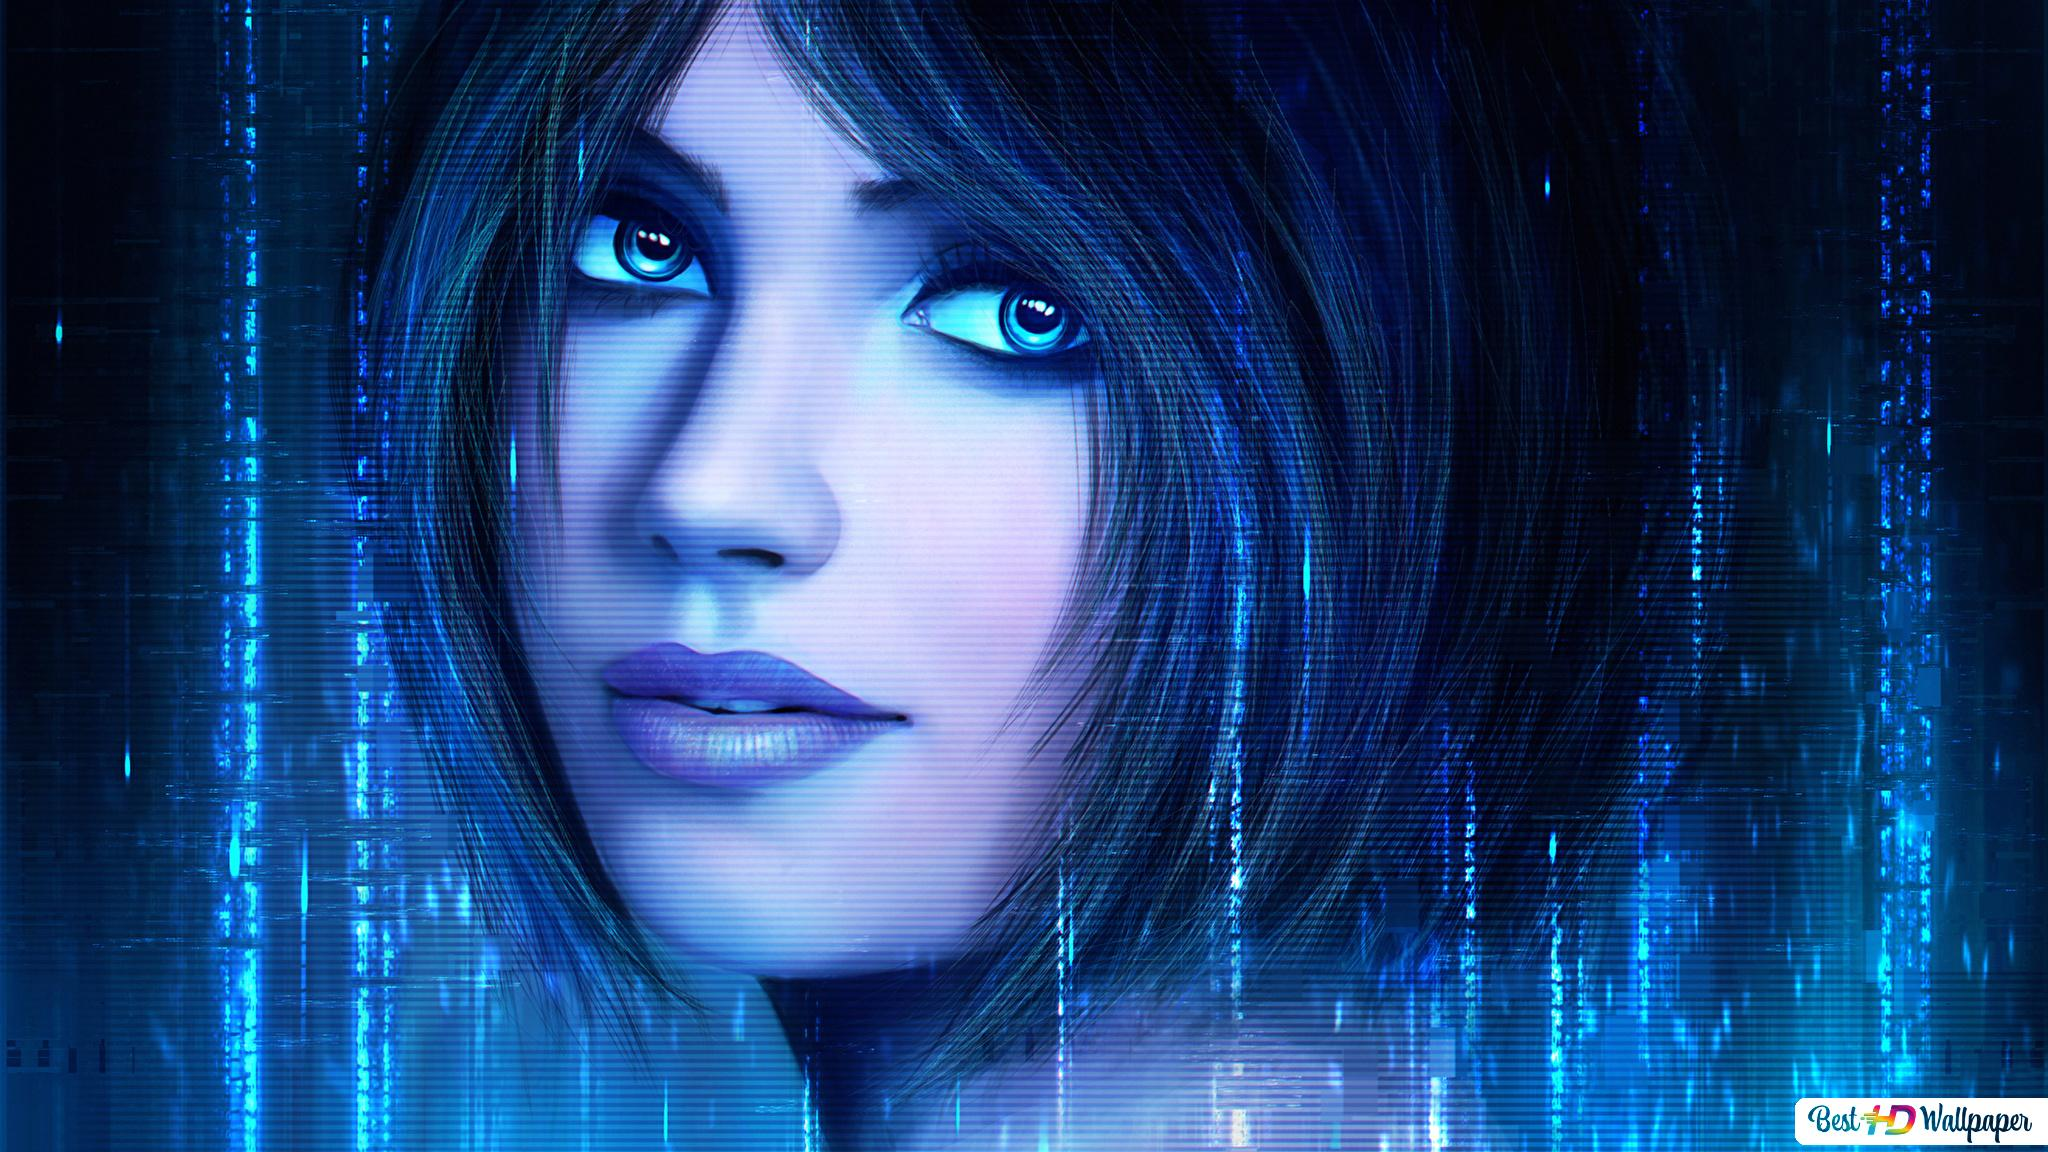 Halo: Combat Evolved game - Cortana AI HD wallpaper download